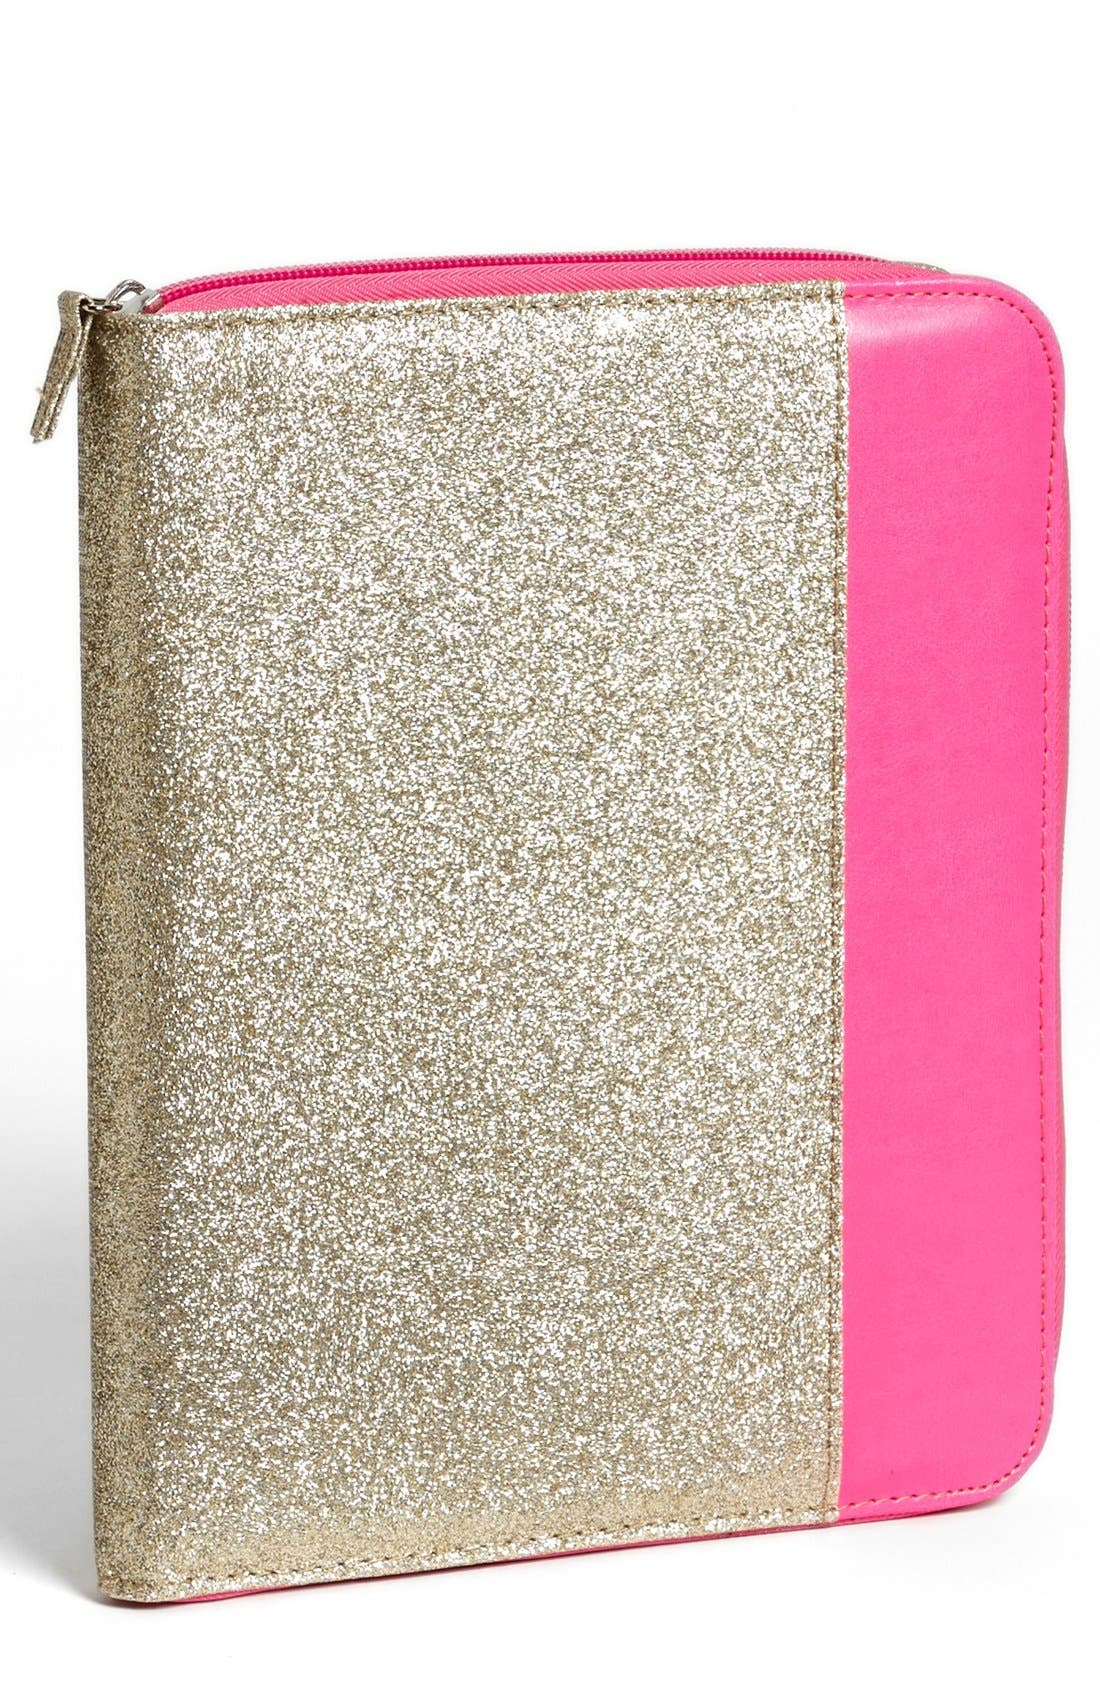 Alternate Image 1 Selected - Capelli of New York iPad Case (Girls)